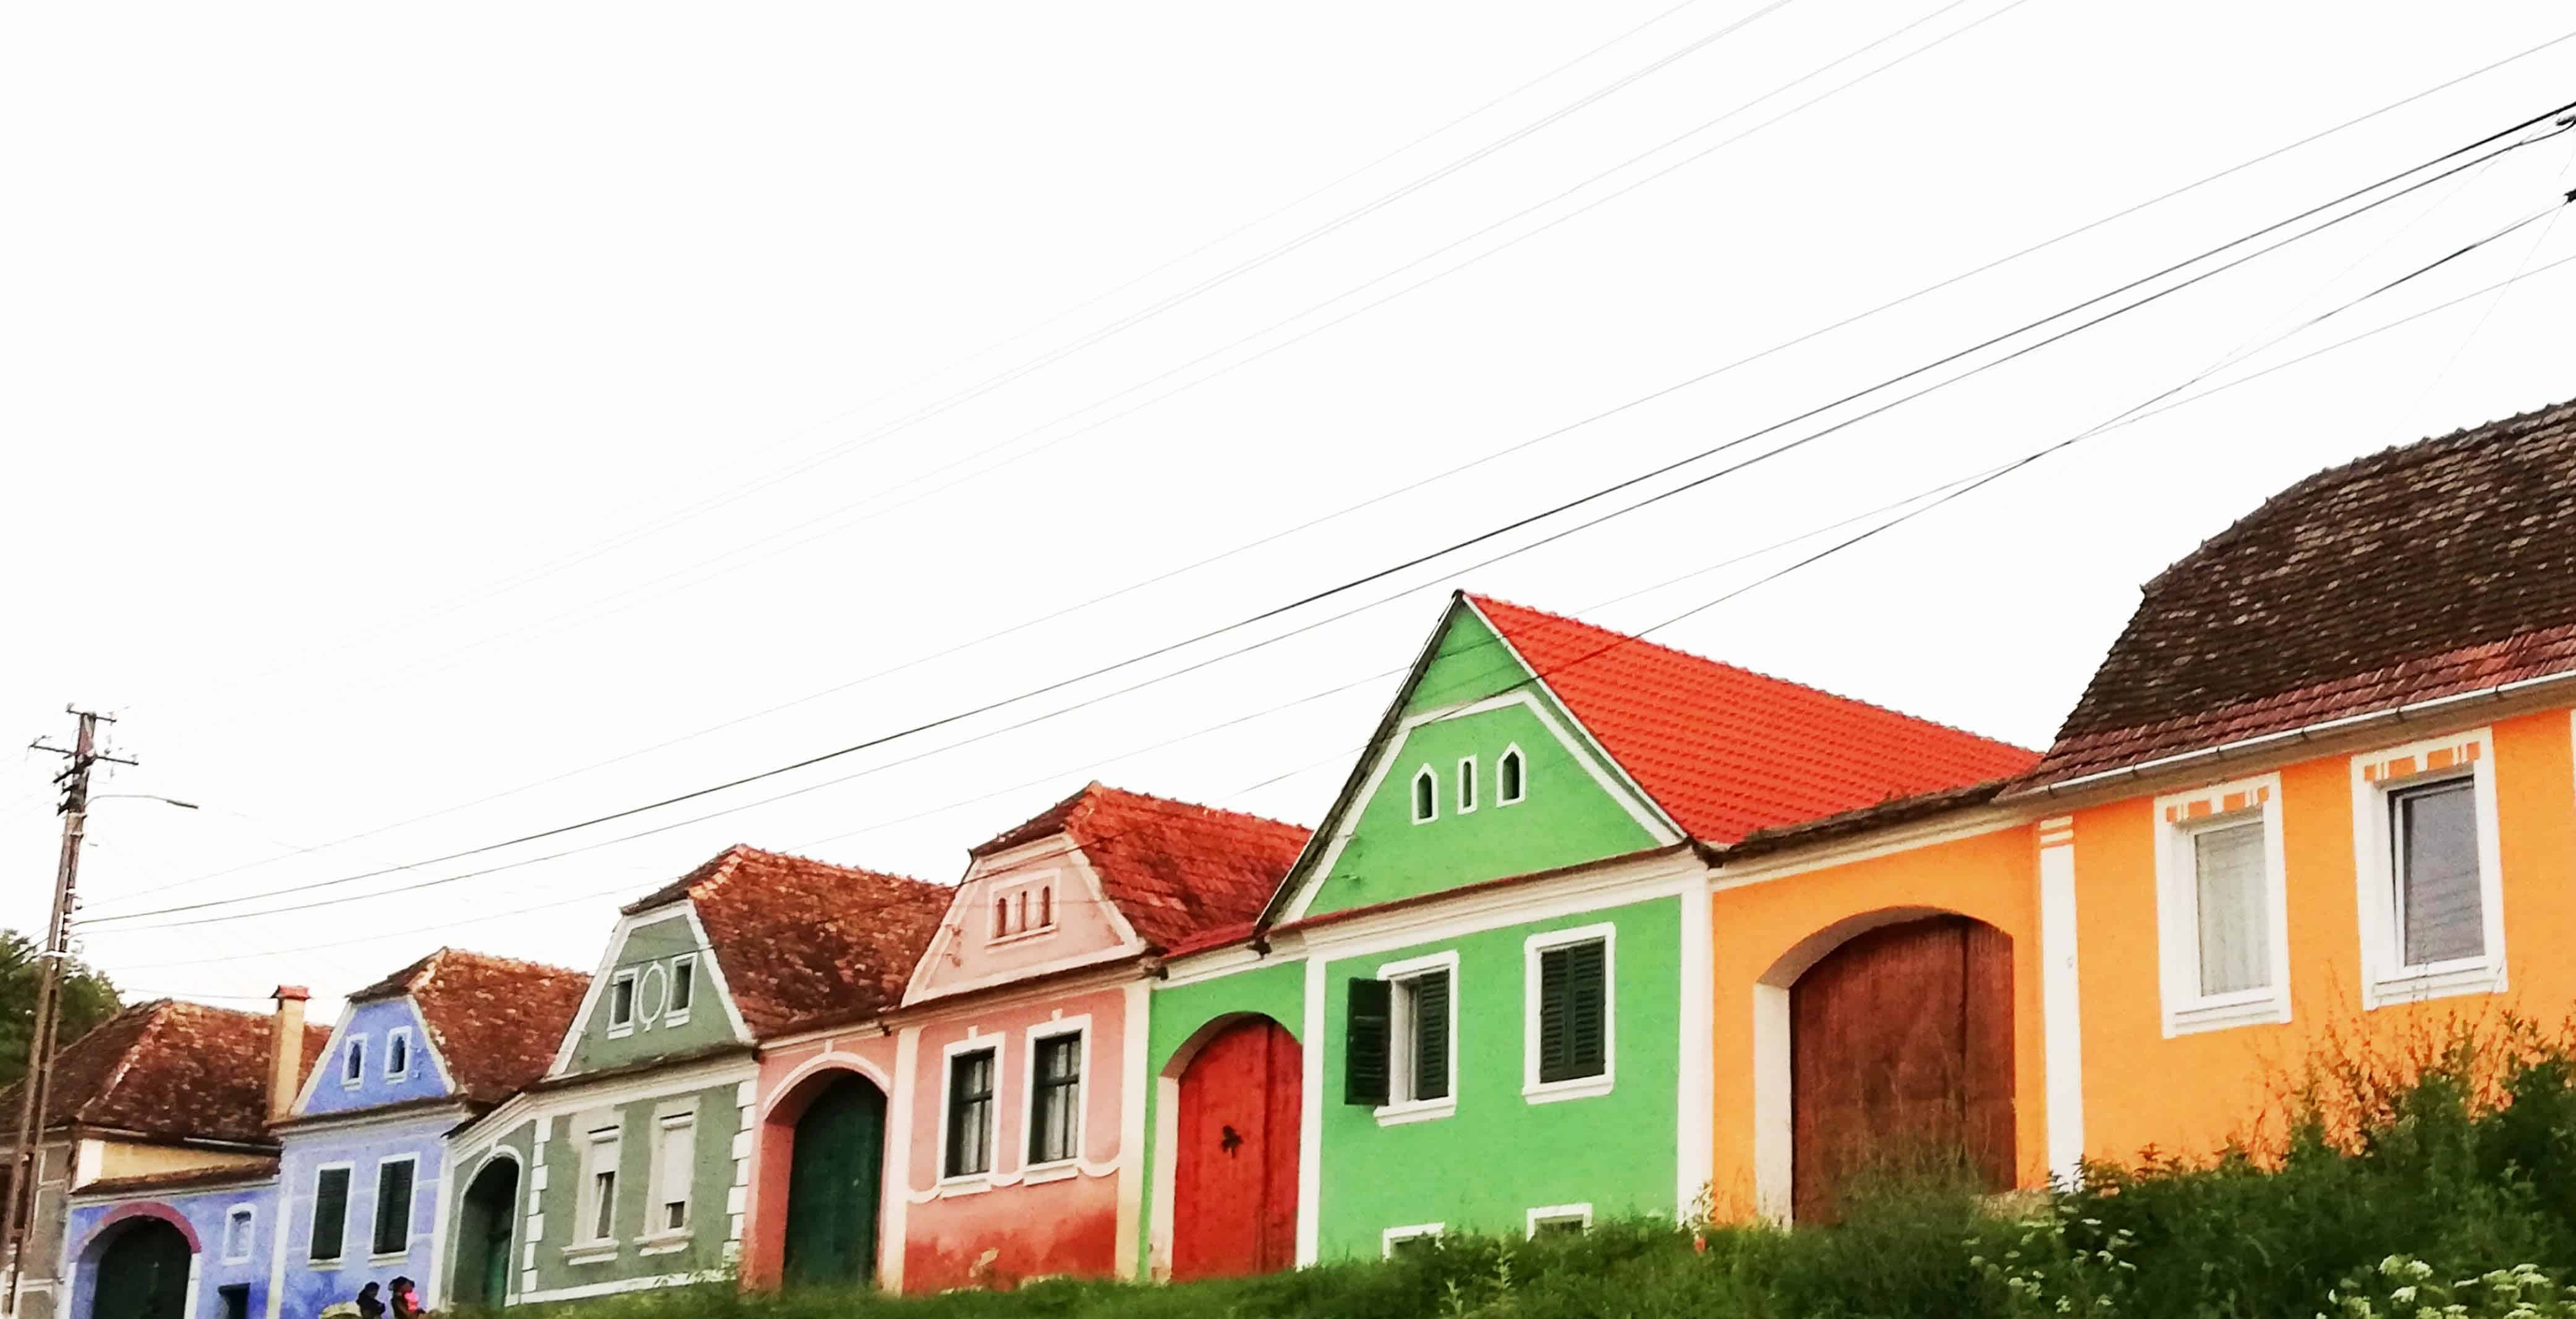 Colorful Houses in Alma Vii